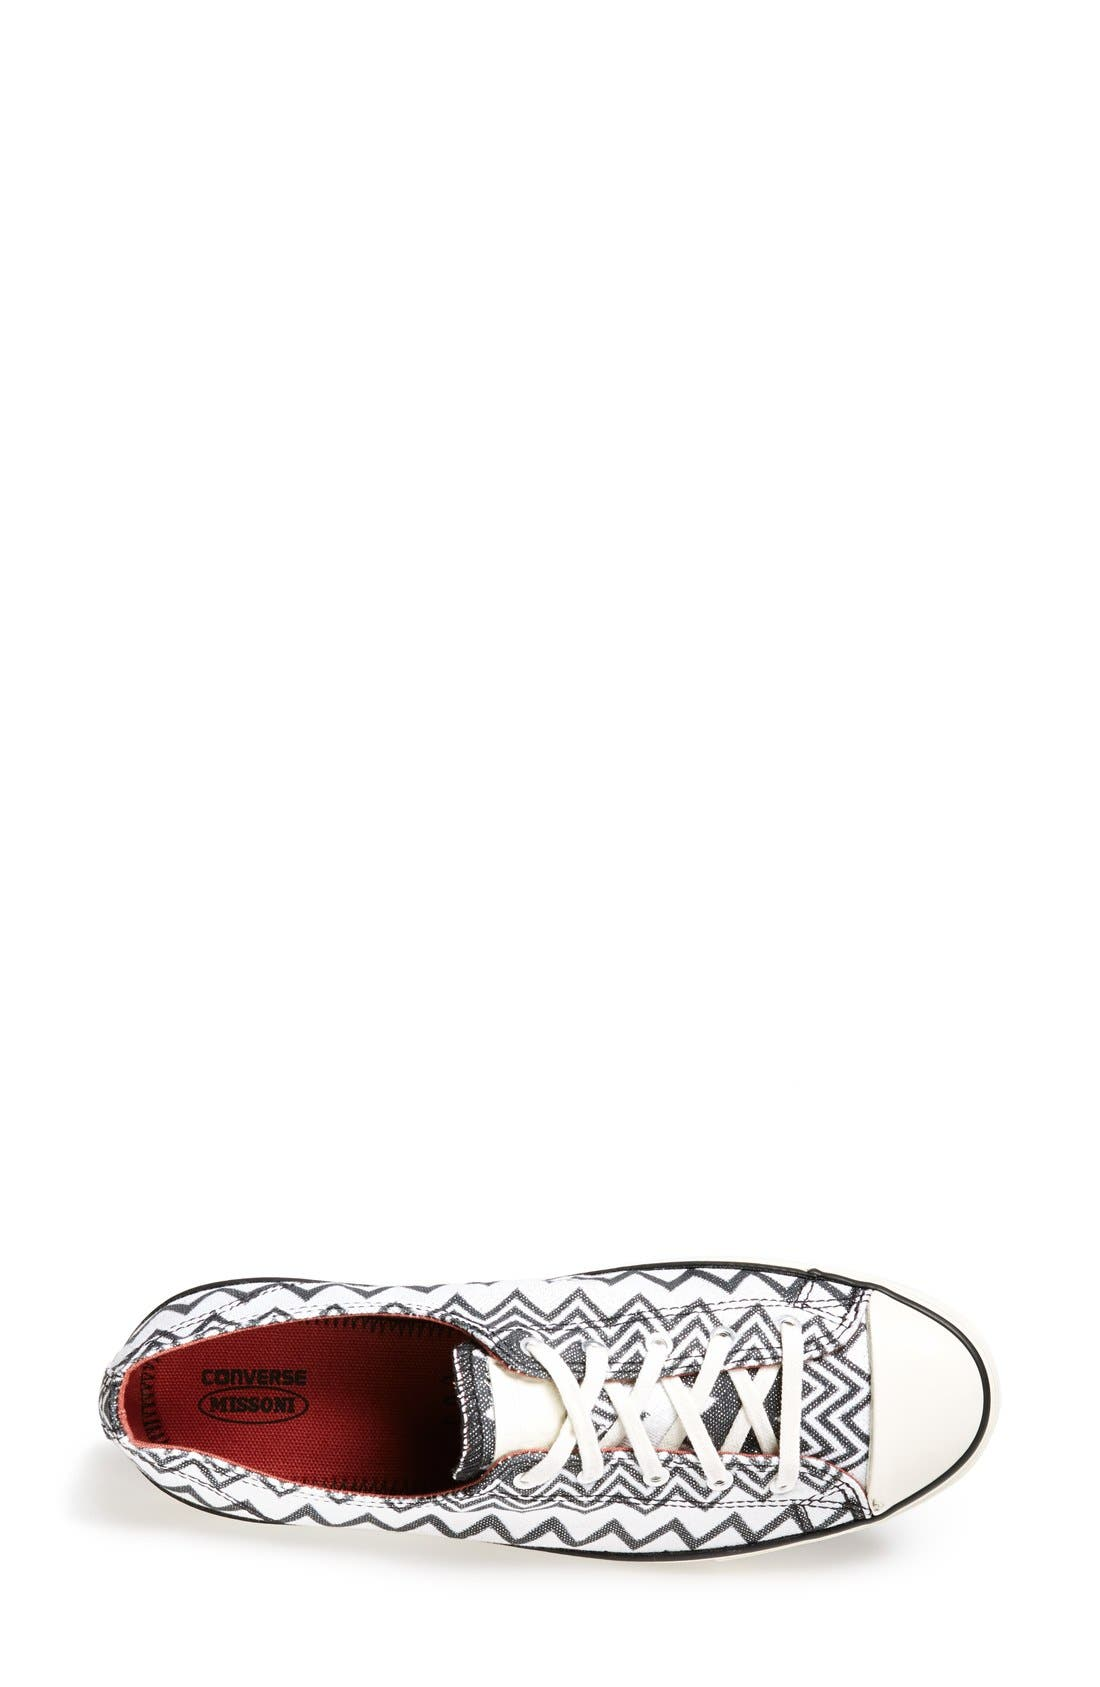 x Missoni Chuck Taylor<sup>®</sup> All Star<sup>®</sup> 'Fancy' Ox Sneaker,                             Alternate thumbnail 4, color,